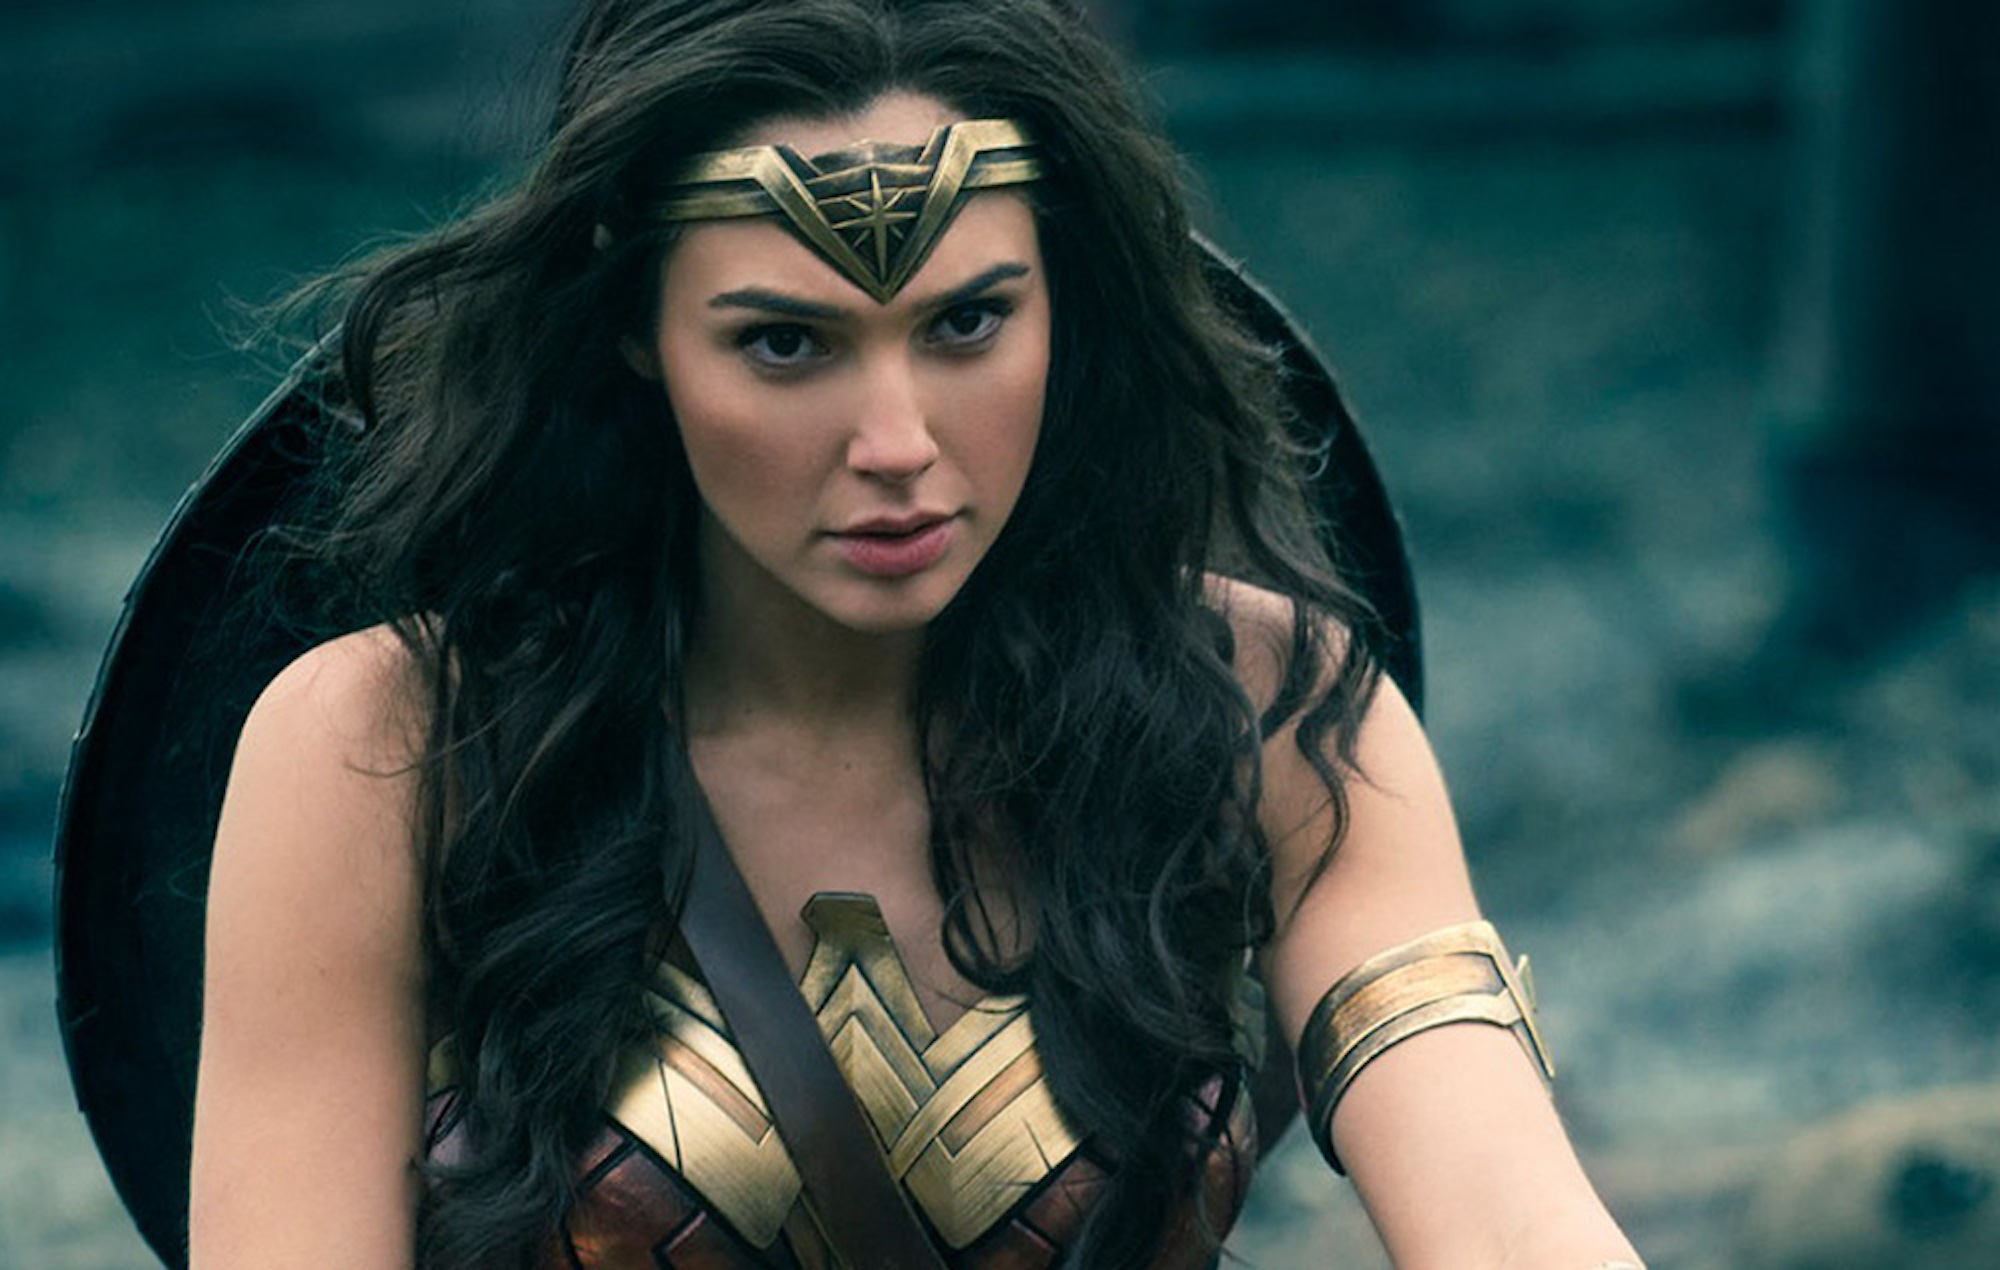 Wonder Woman 3' story is already done, says director